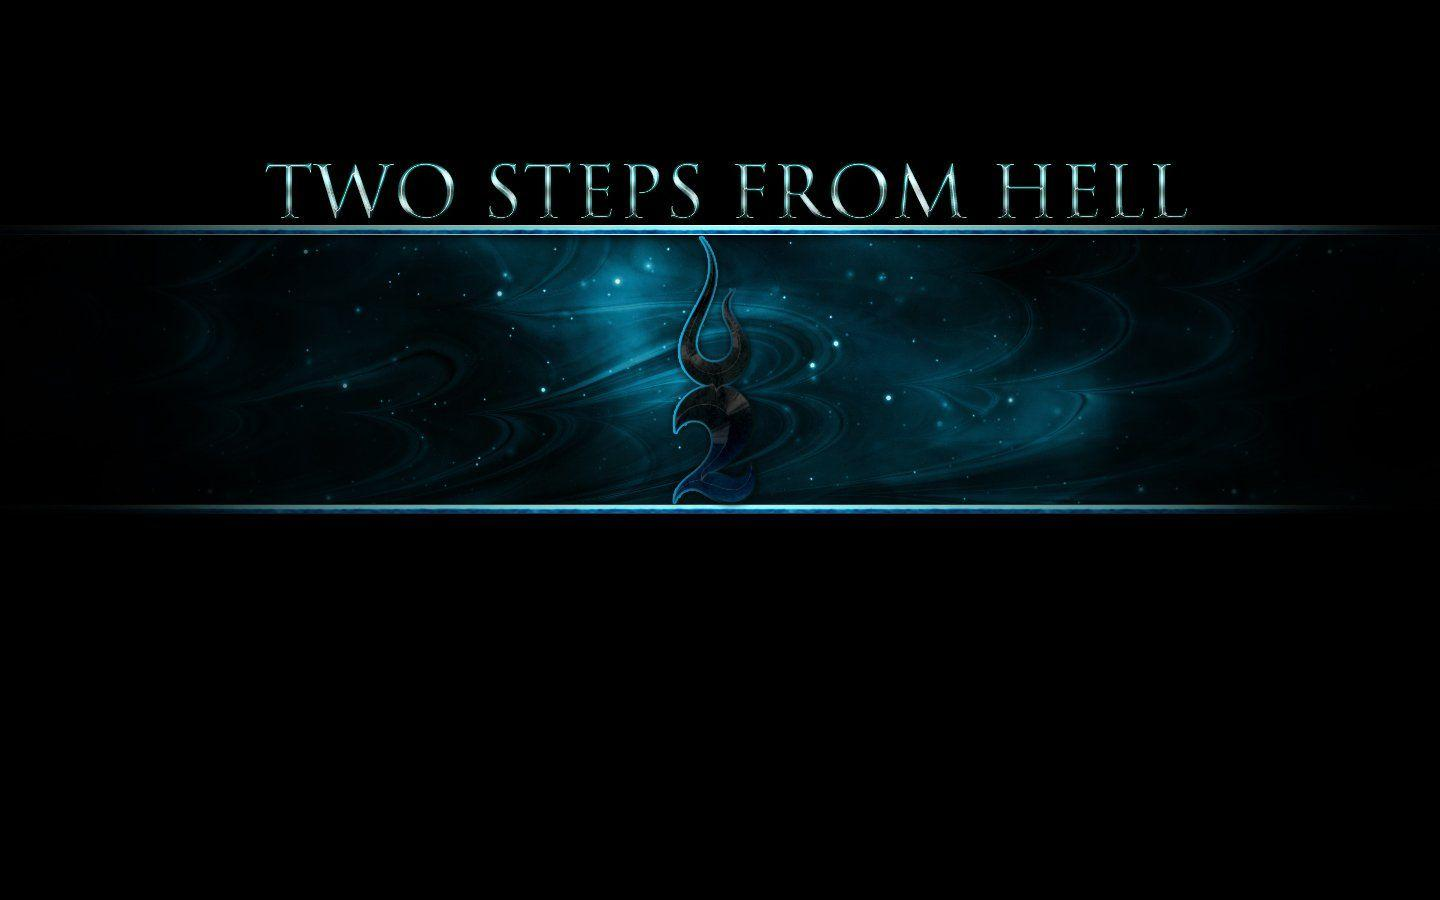 Two Steps From Hell Wallpapers Wallpaper Cave